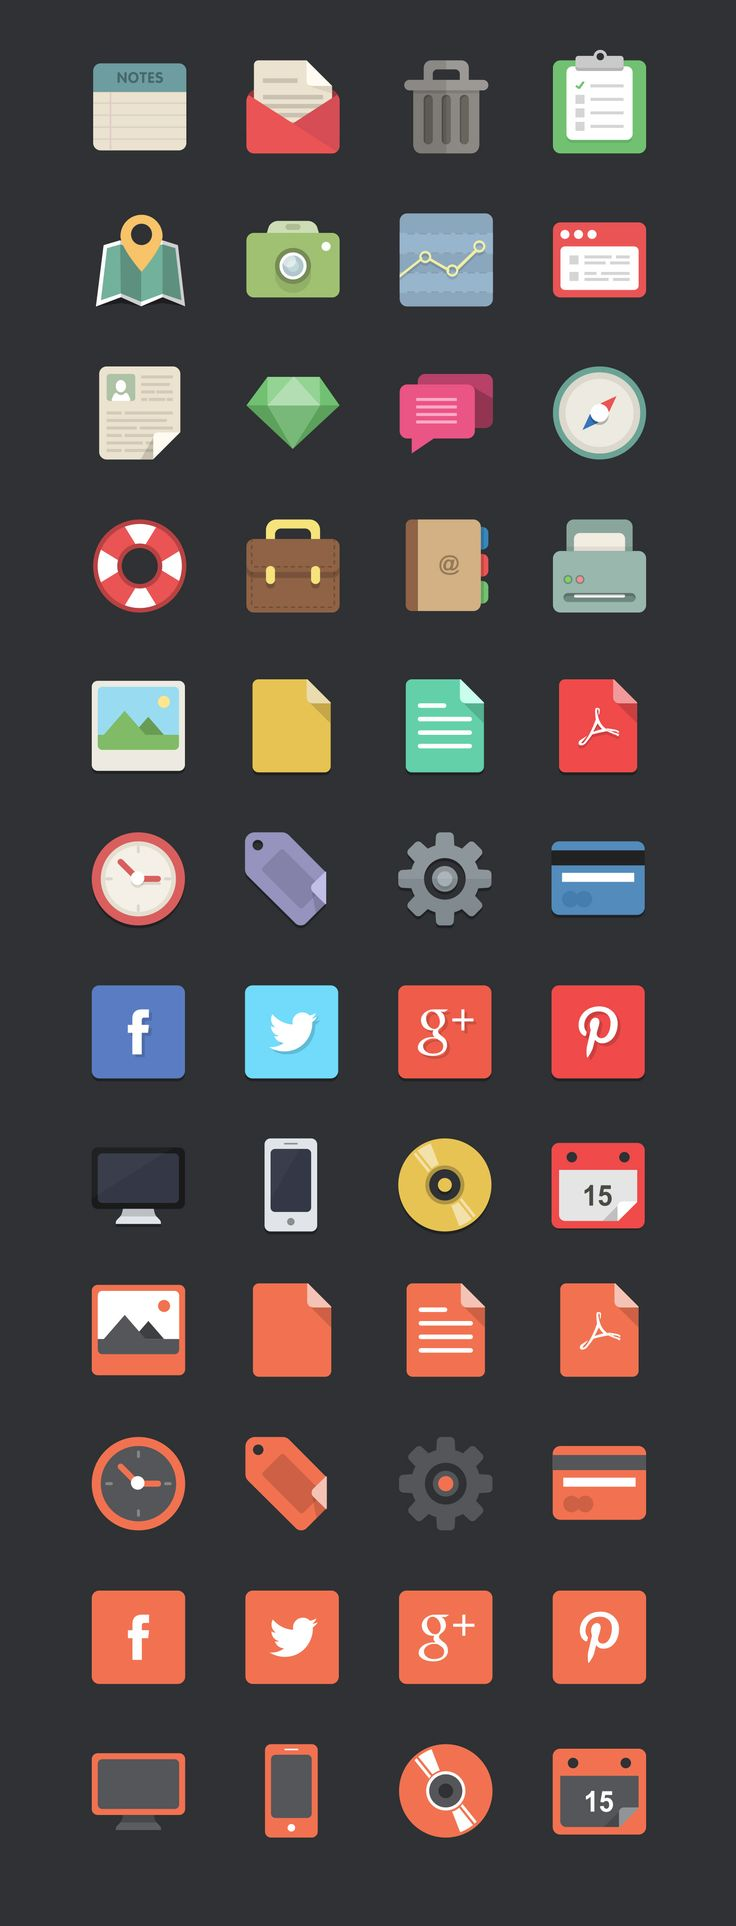 60 Incredible Free Flat Icon Sets For Designers